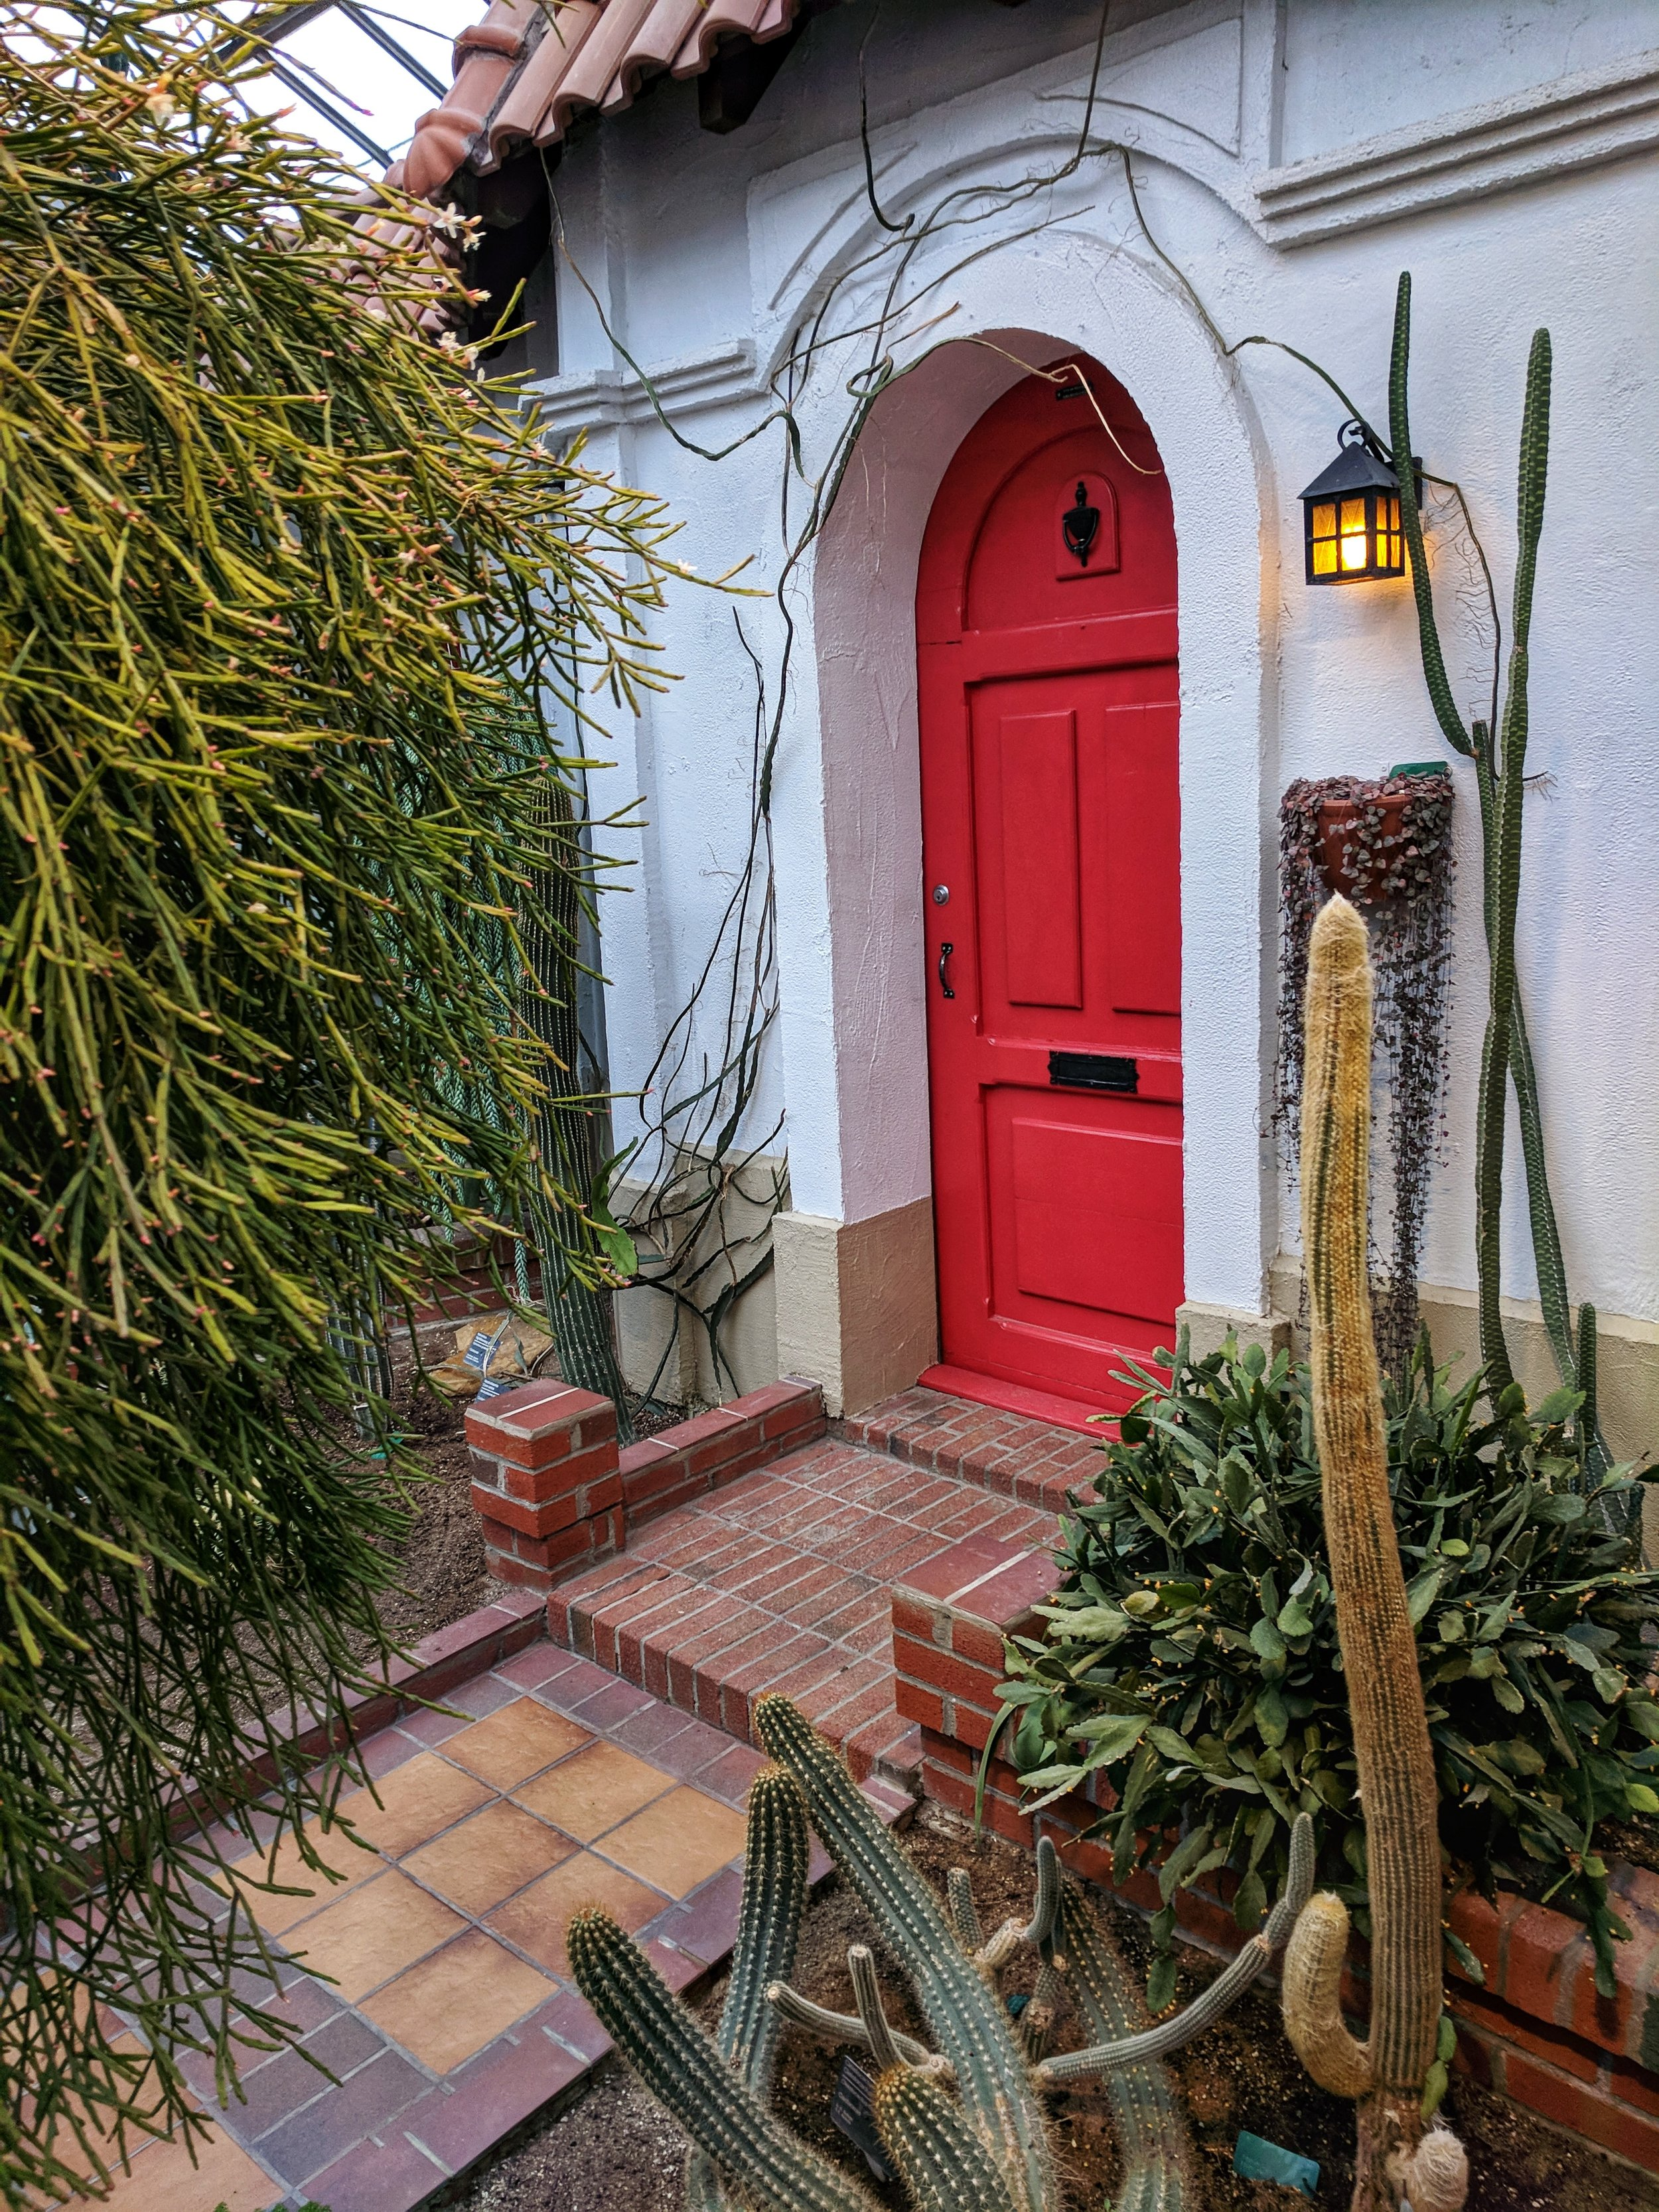 The red doorway in the Hacienda Room at the Botanical Garden